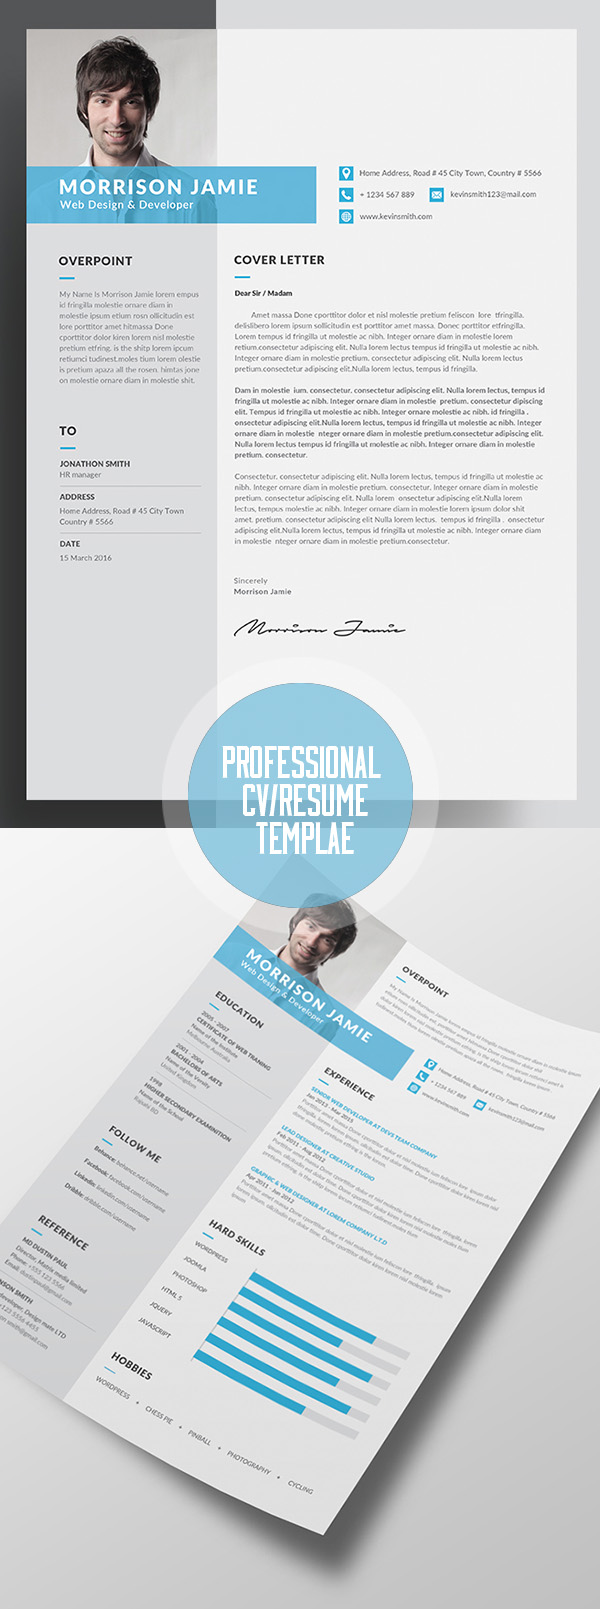 18 professional cv resume templates and cover letter design professional resume cv template